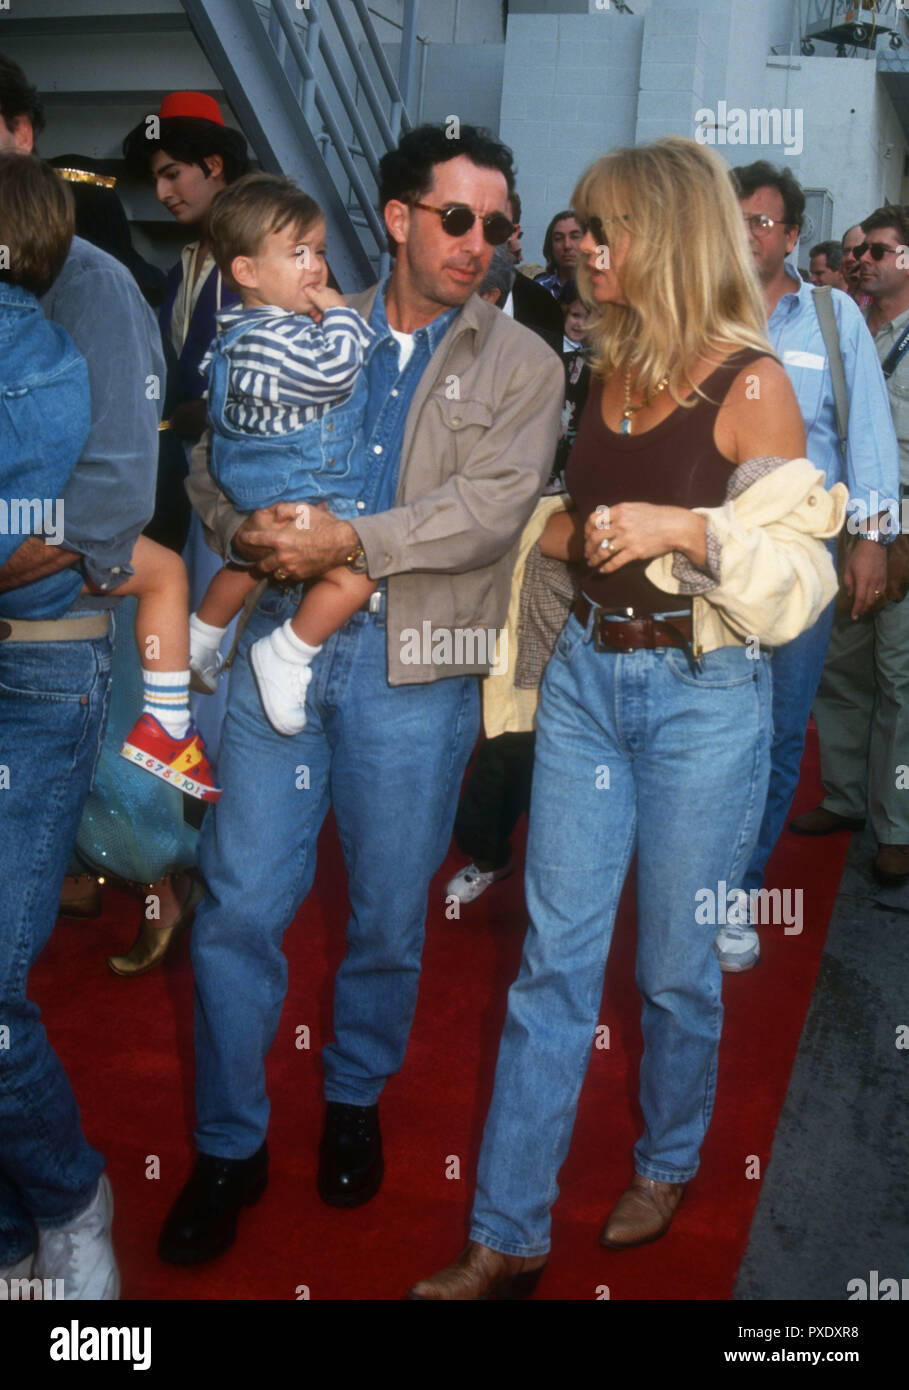 HOLLYWOOD, CA - NOVEMBER 8: Producer Mark Canton and son and actress Goldie Hawn attend Disney's 'Aladdin' Premiere on November 8, 1992 at the El Capitan Theatre in Hollywood, California. Photo by Barry King/Alamy Stock Photo - Stock Image